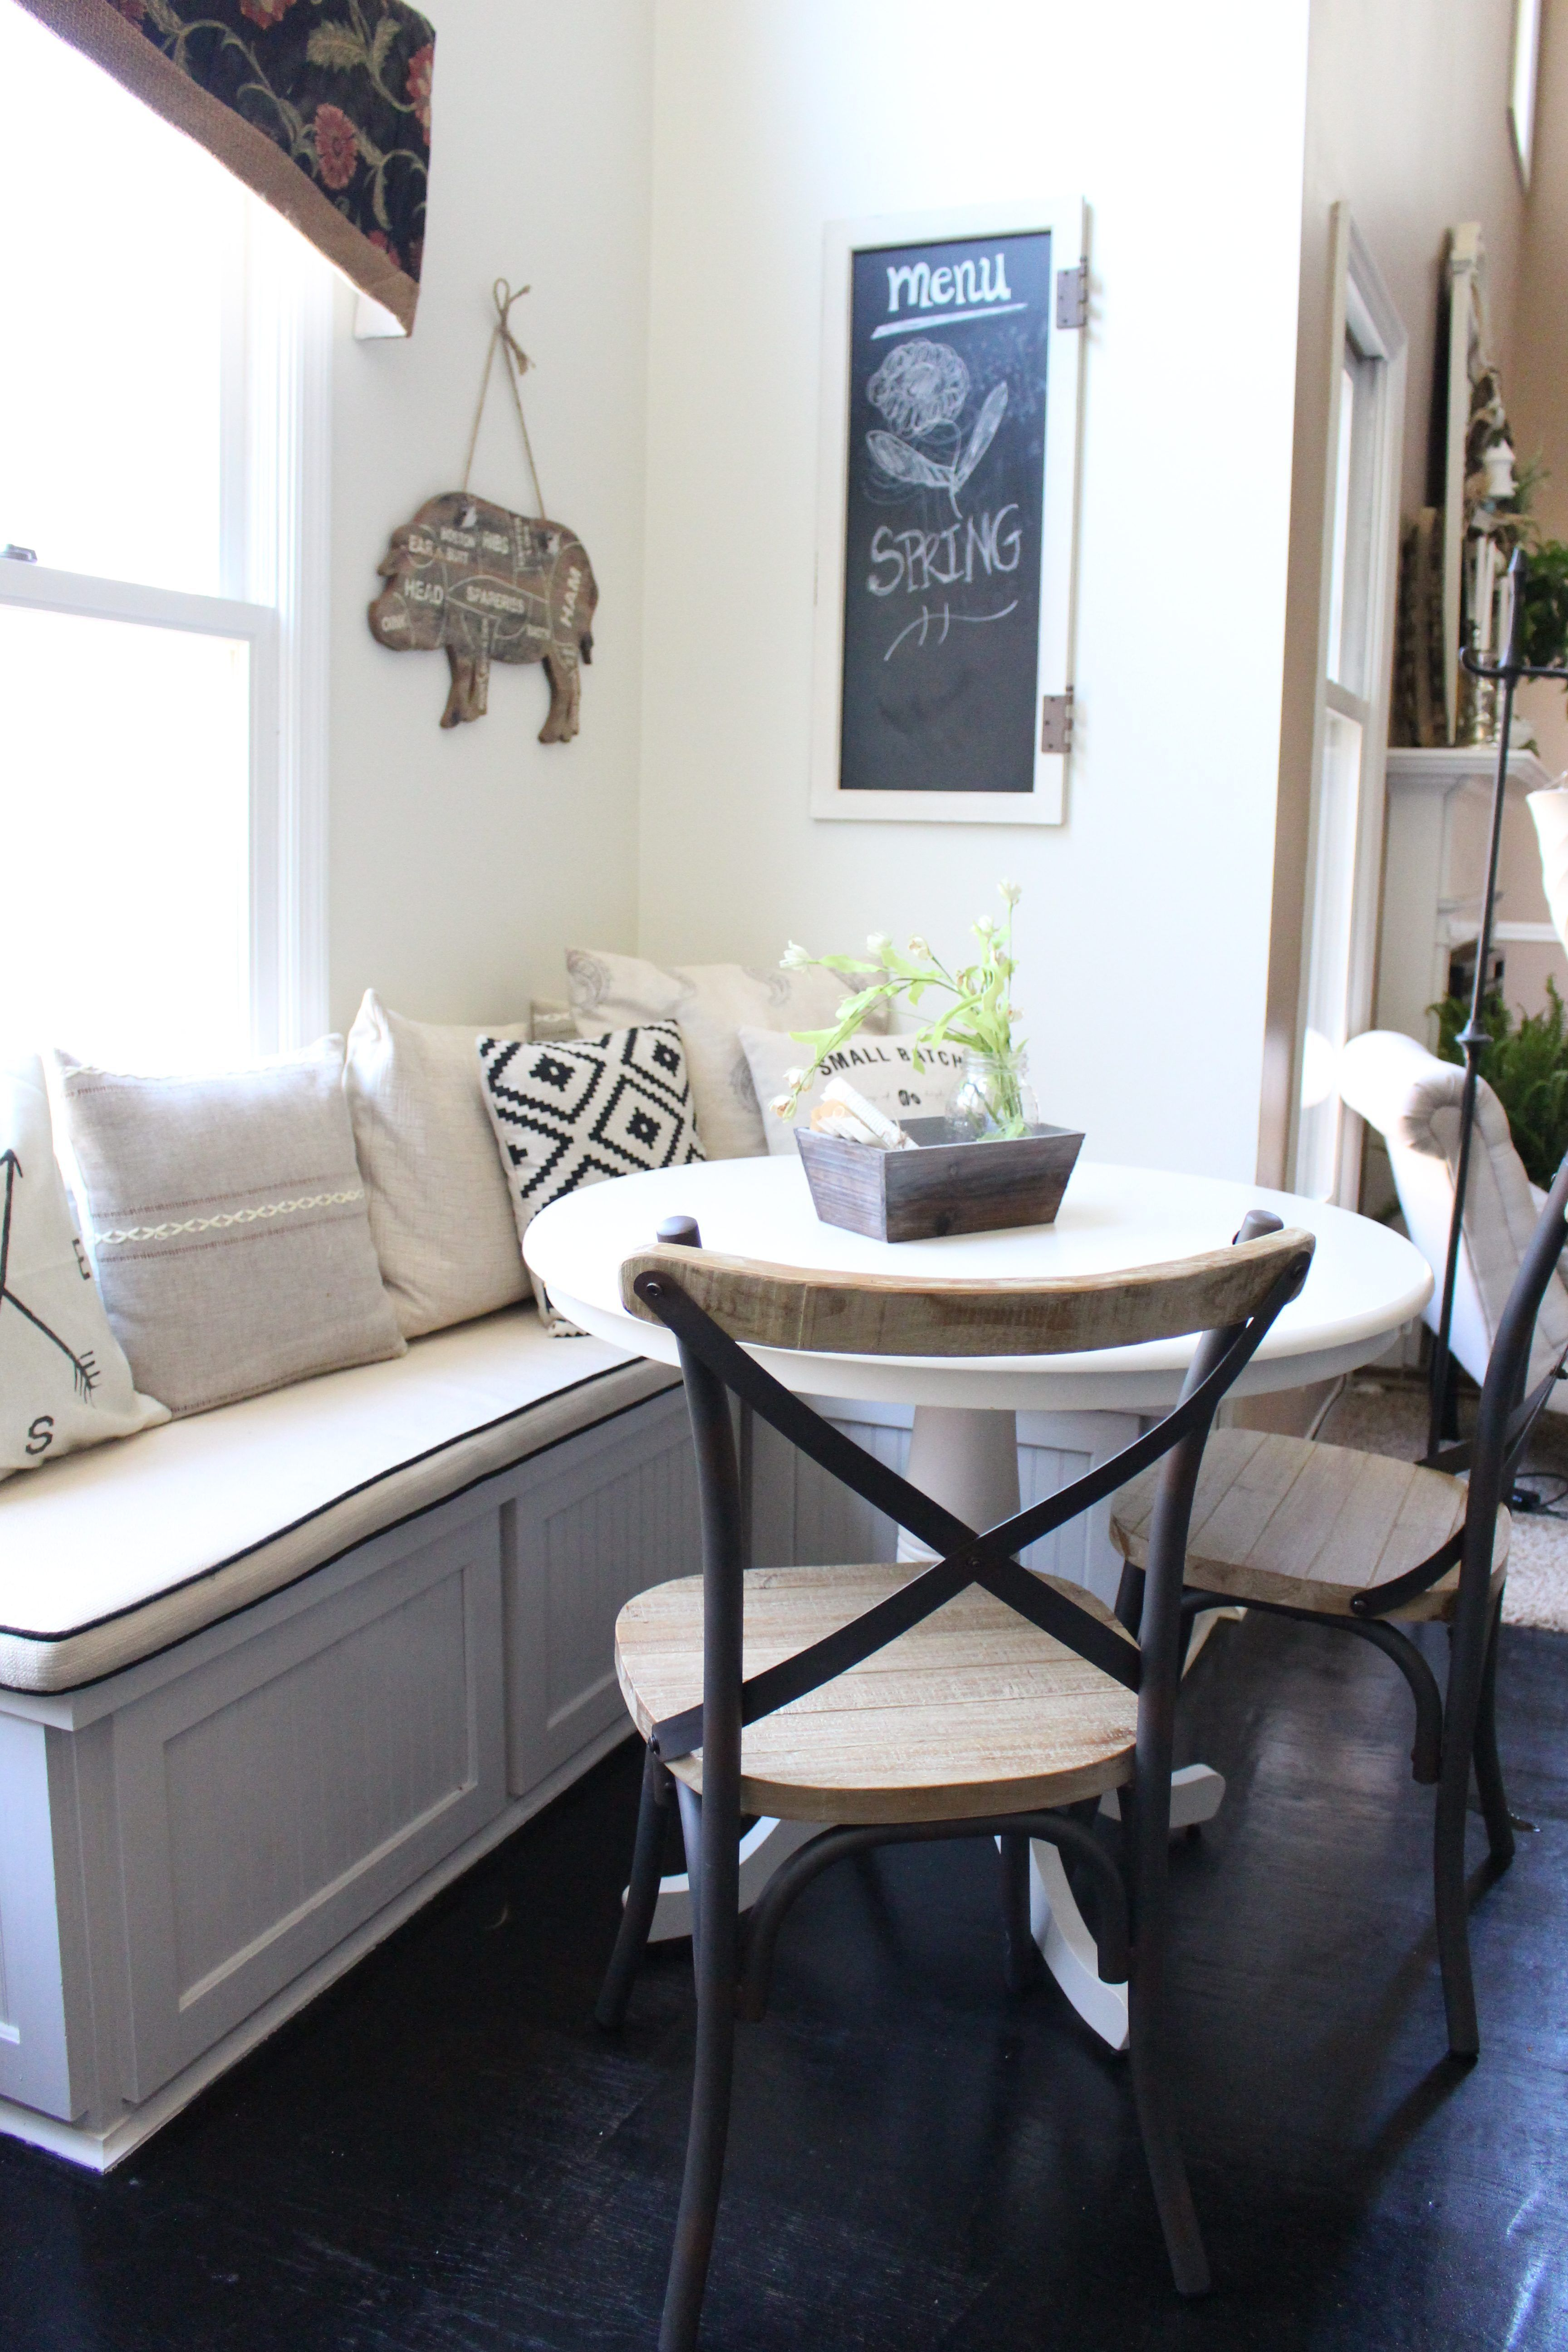 New Look In The Kitchen Nook Heading To The Beach White Cottage Home Living Dining Nook Window Seat Kitchen Bistro Table Bistro table for kitchen